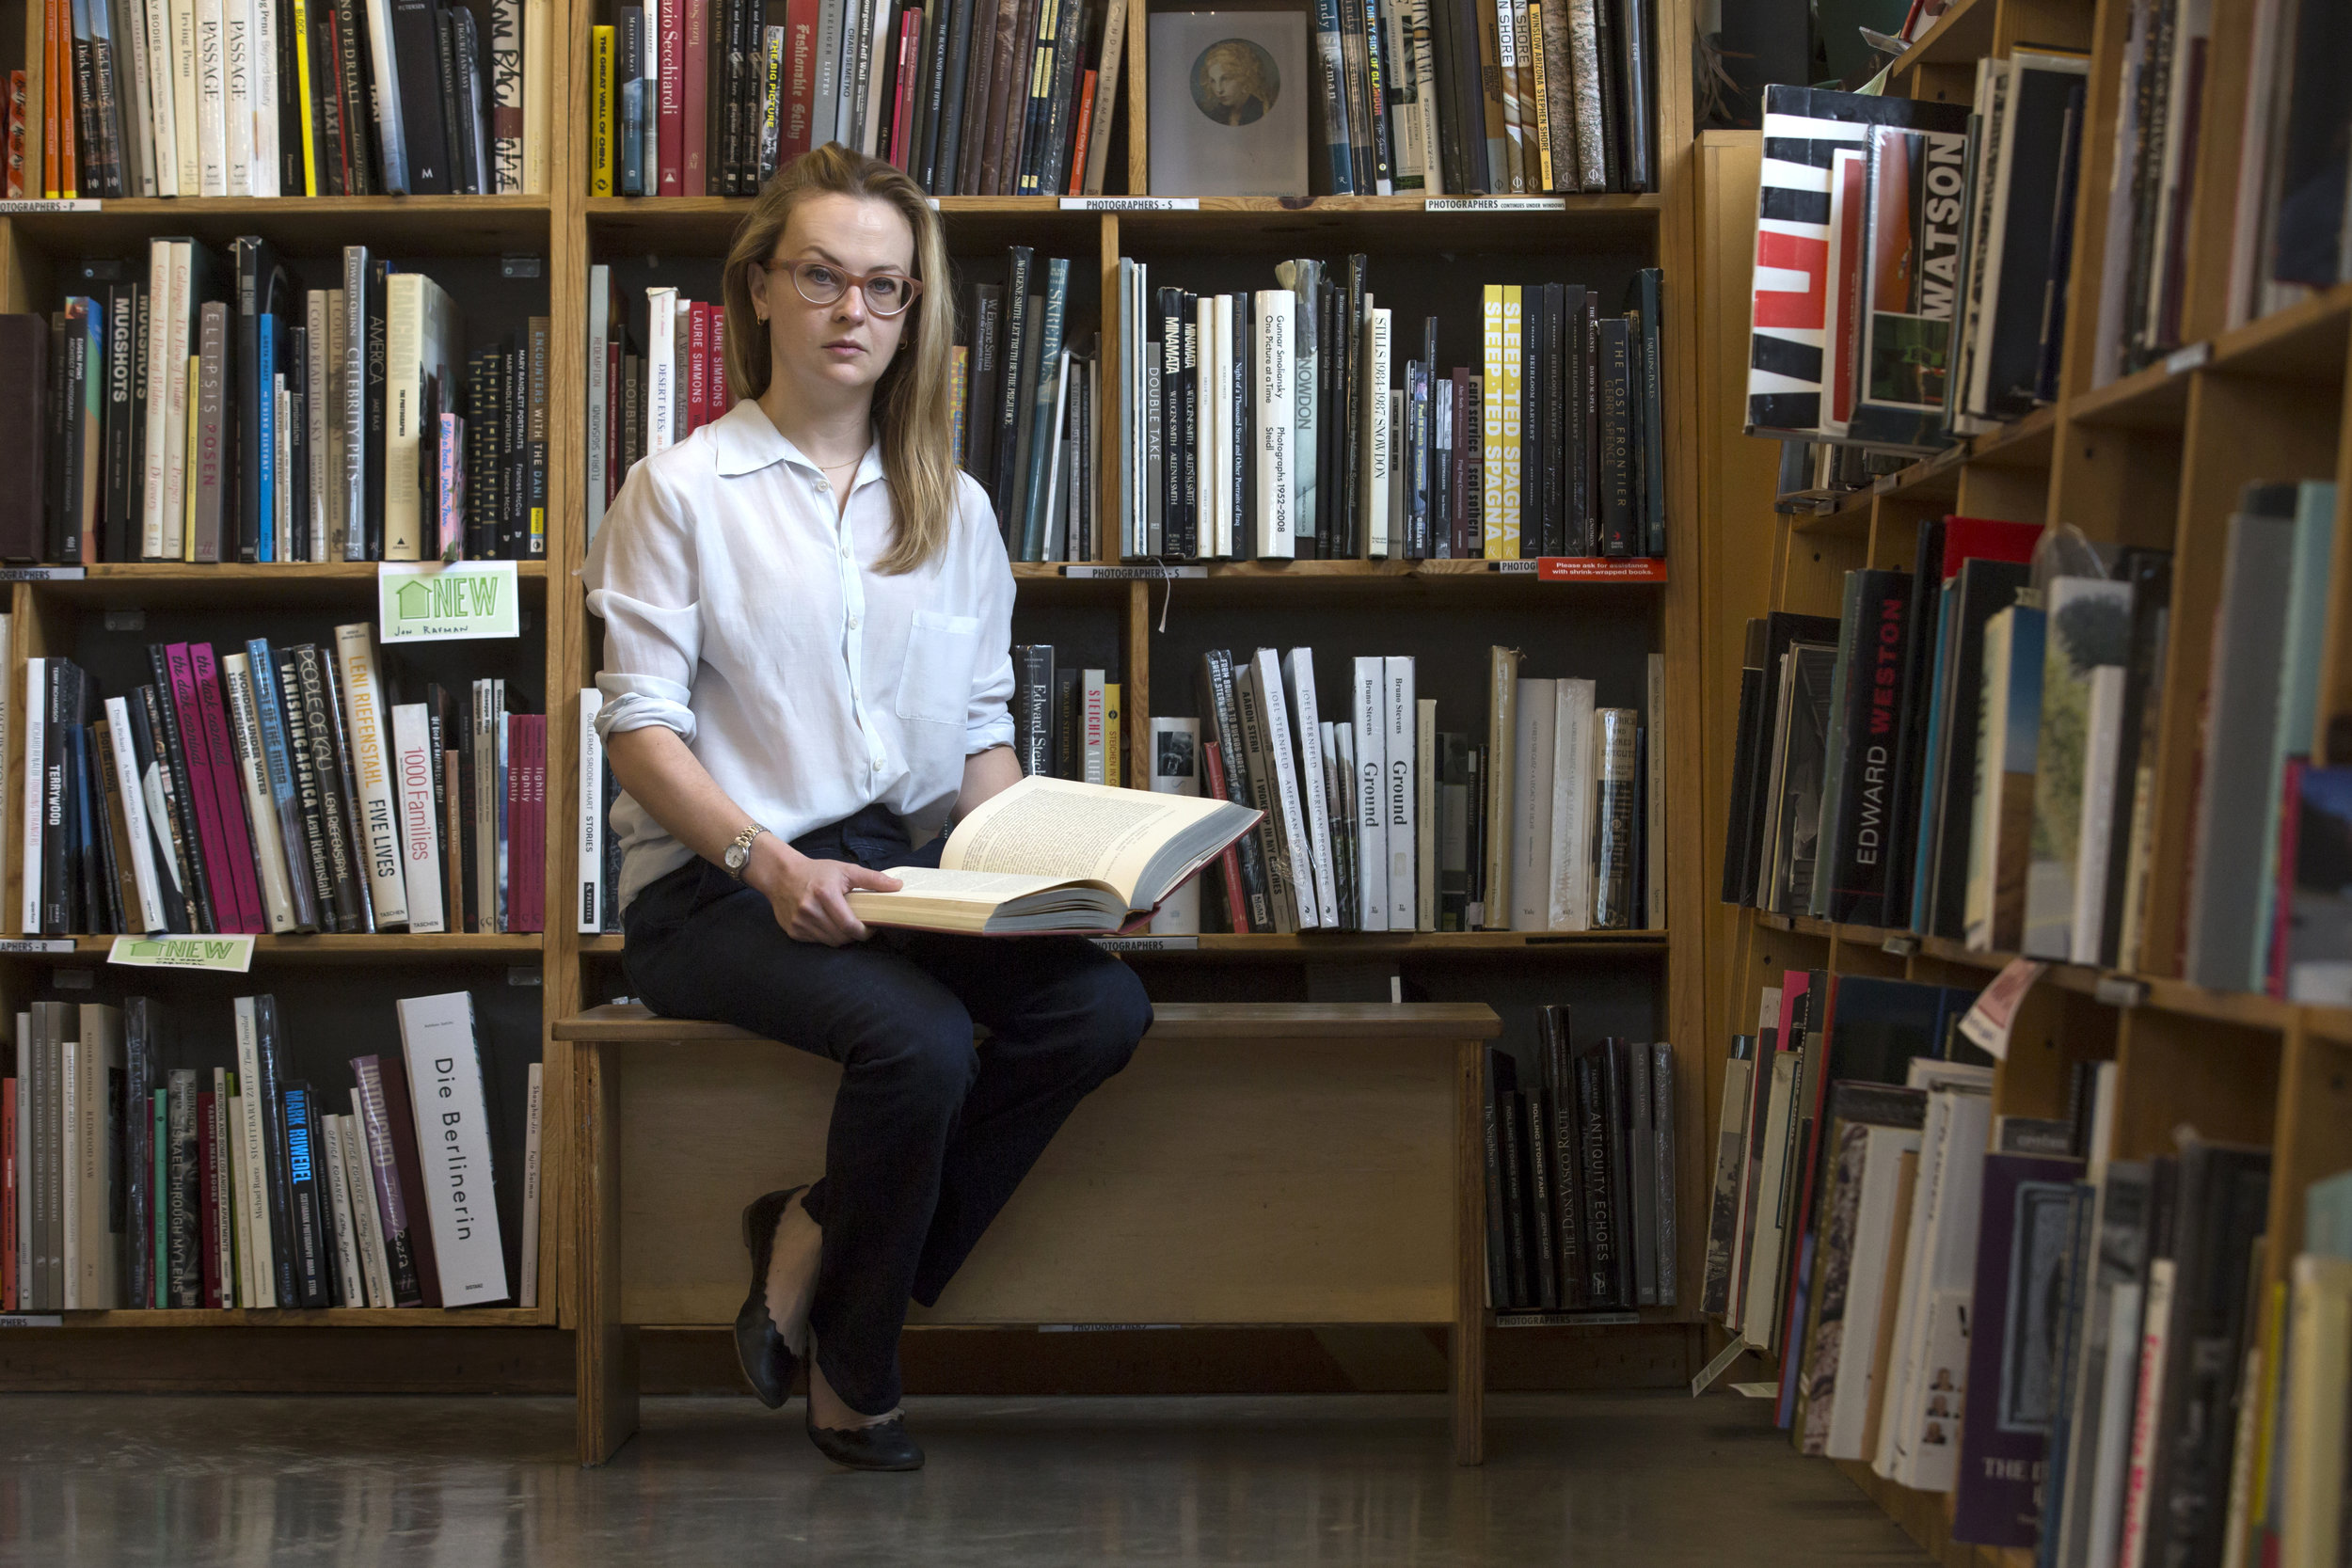 Emily Powell | Owner of Powell's Books